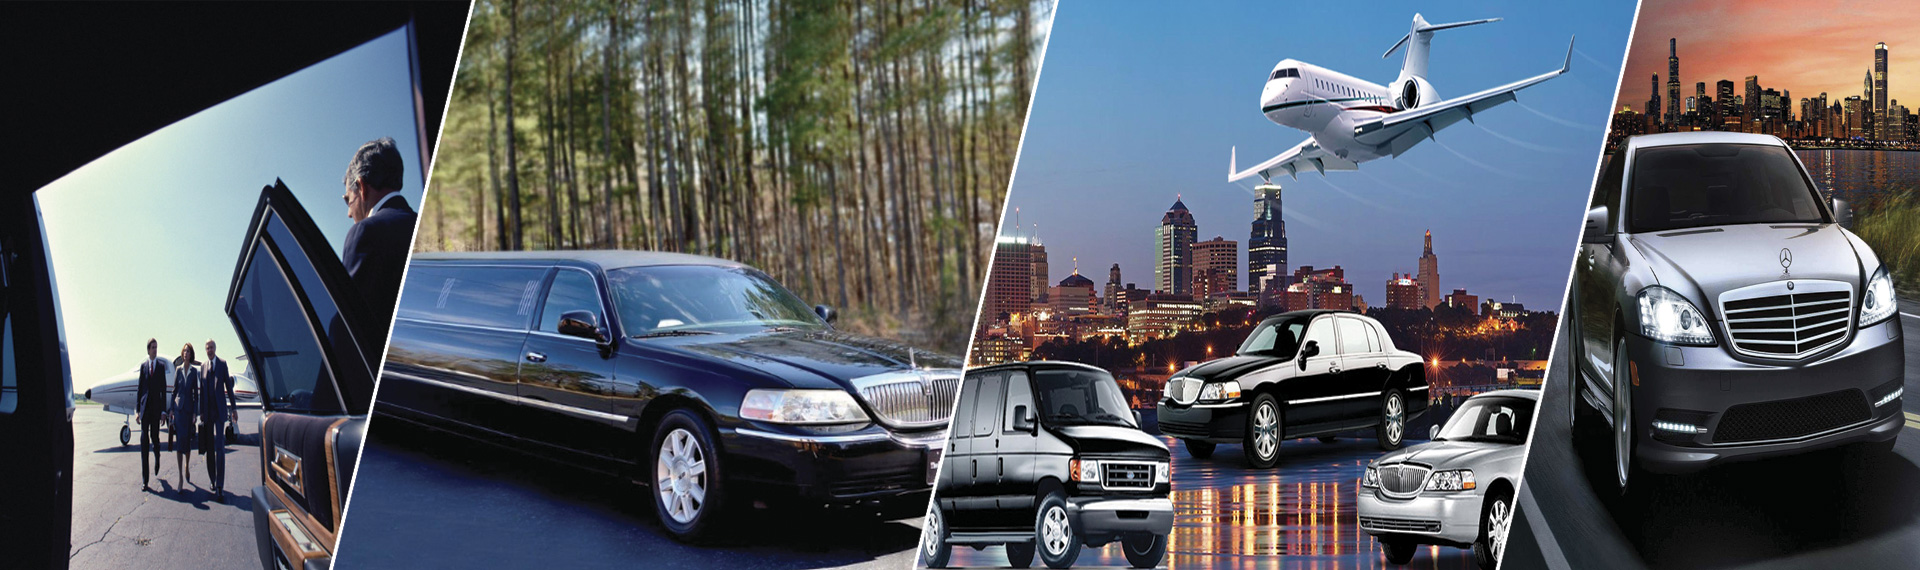 Luxe Limousine Springfield PA